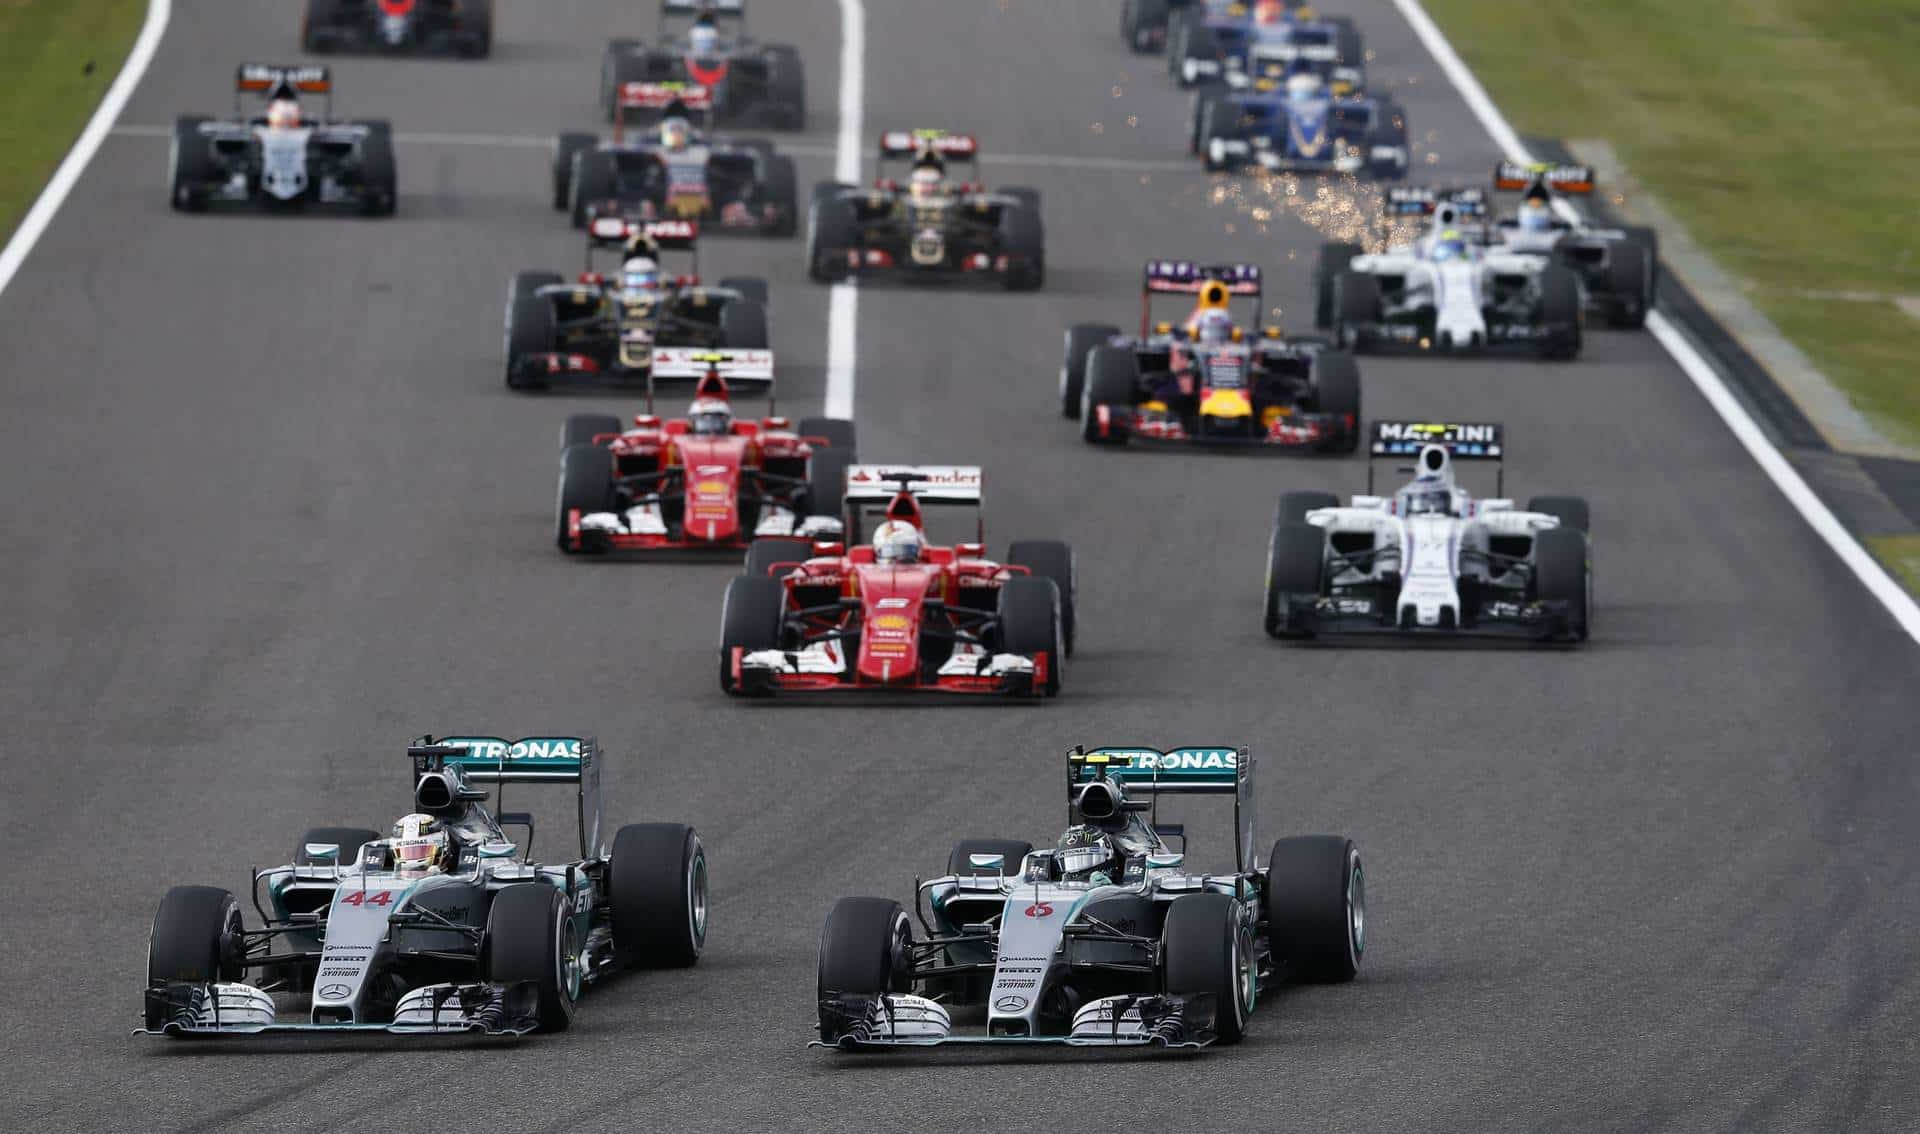 2015 Japanese GP start Hamilton Rosberg Mercedes